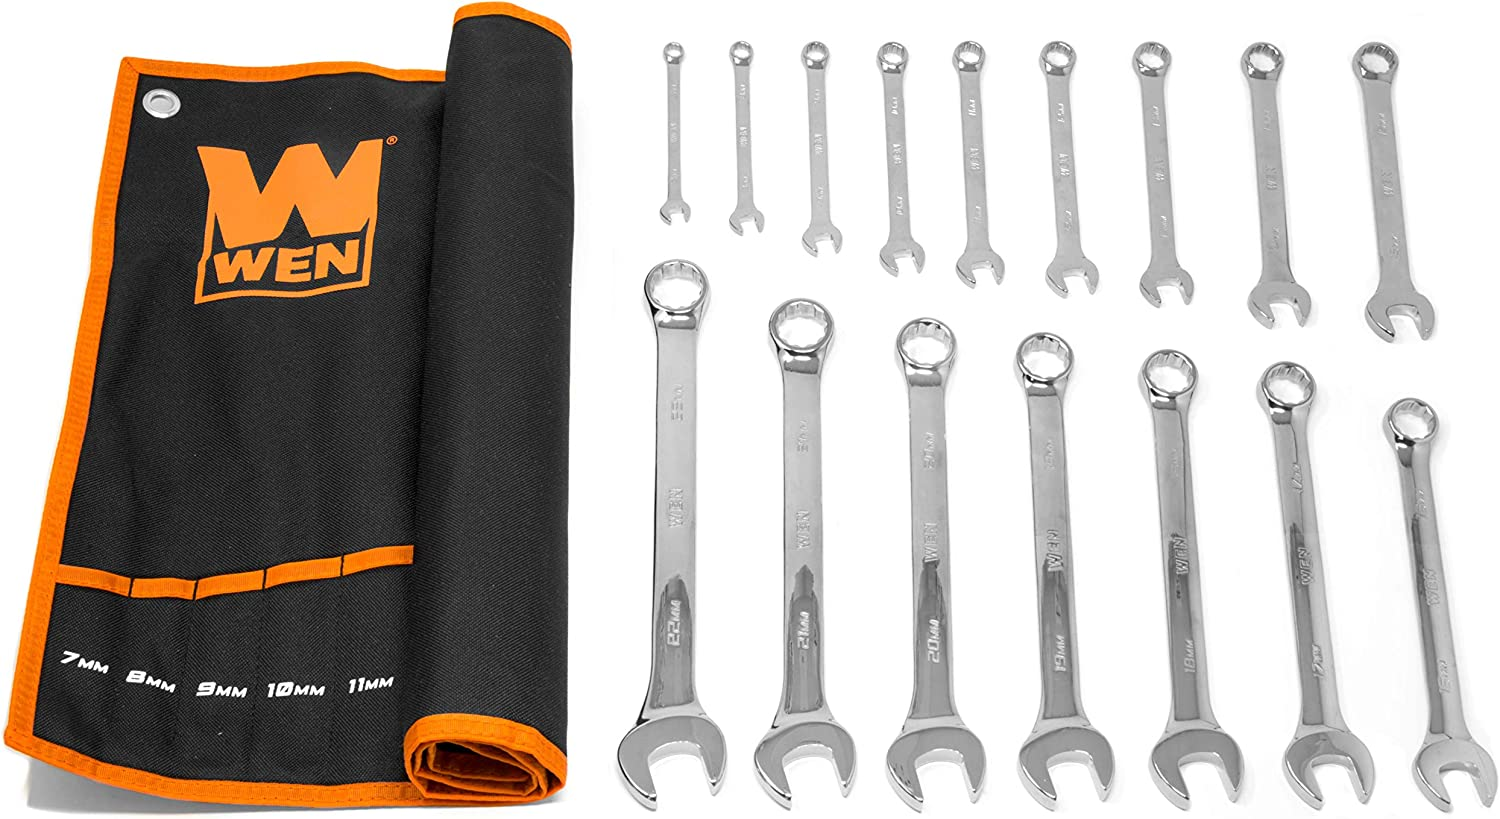 WEN WR160M 16-Piece Professional-Grade Metric Combination Wrench Set with Storage Pouch